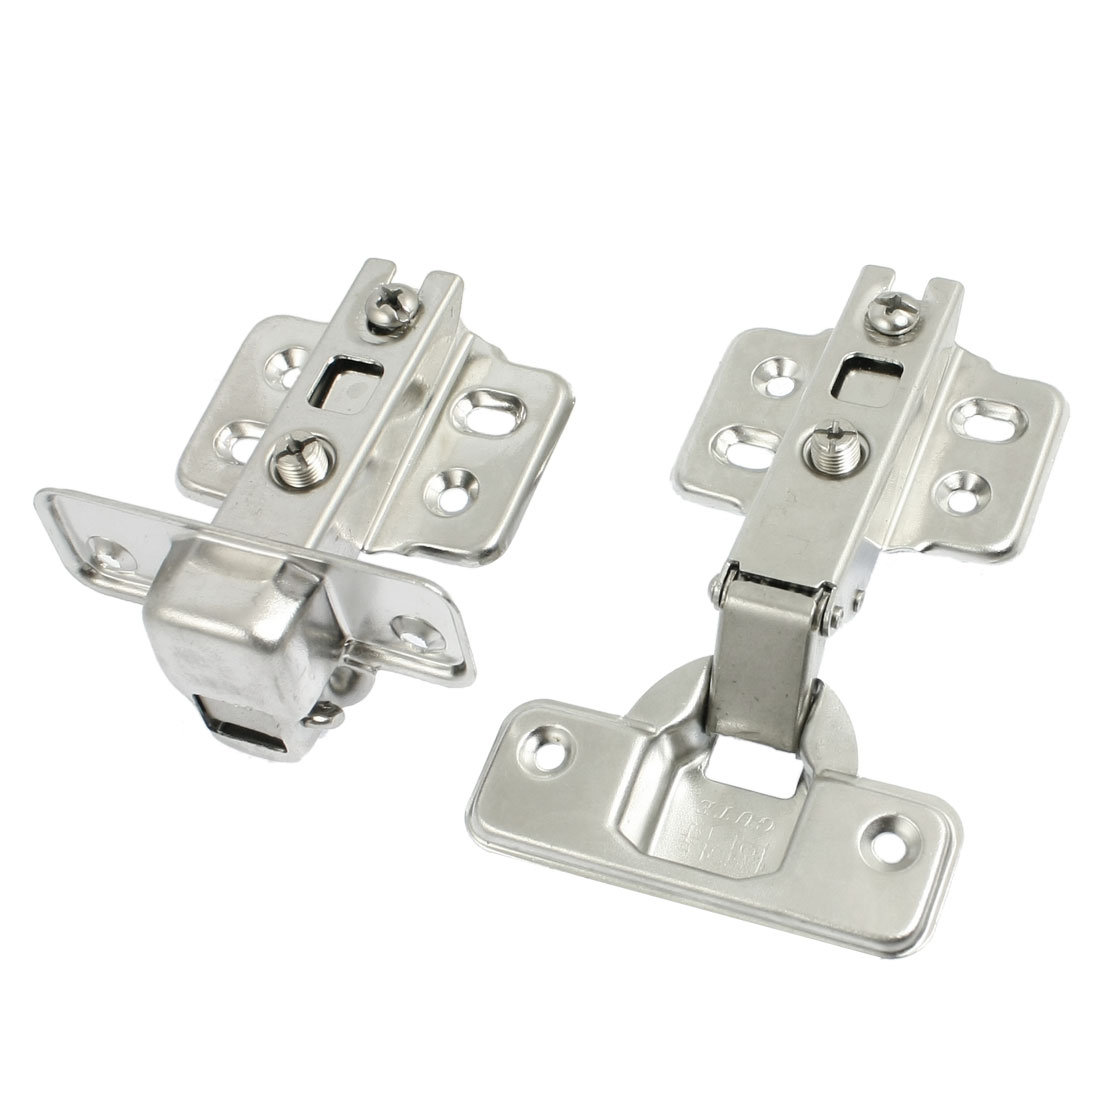 Stainless Steel Buffering Full Overlay Cabinet Door Hinge 2Pcs